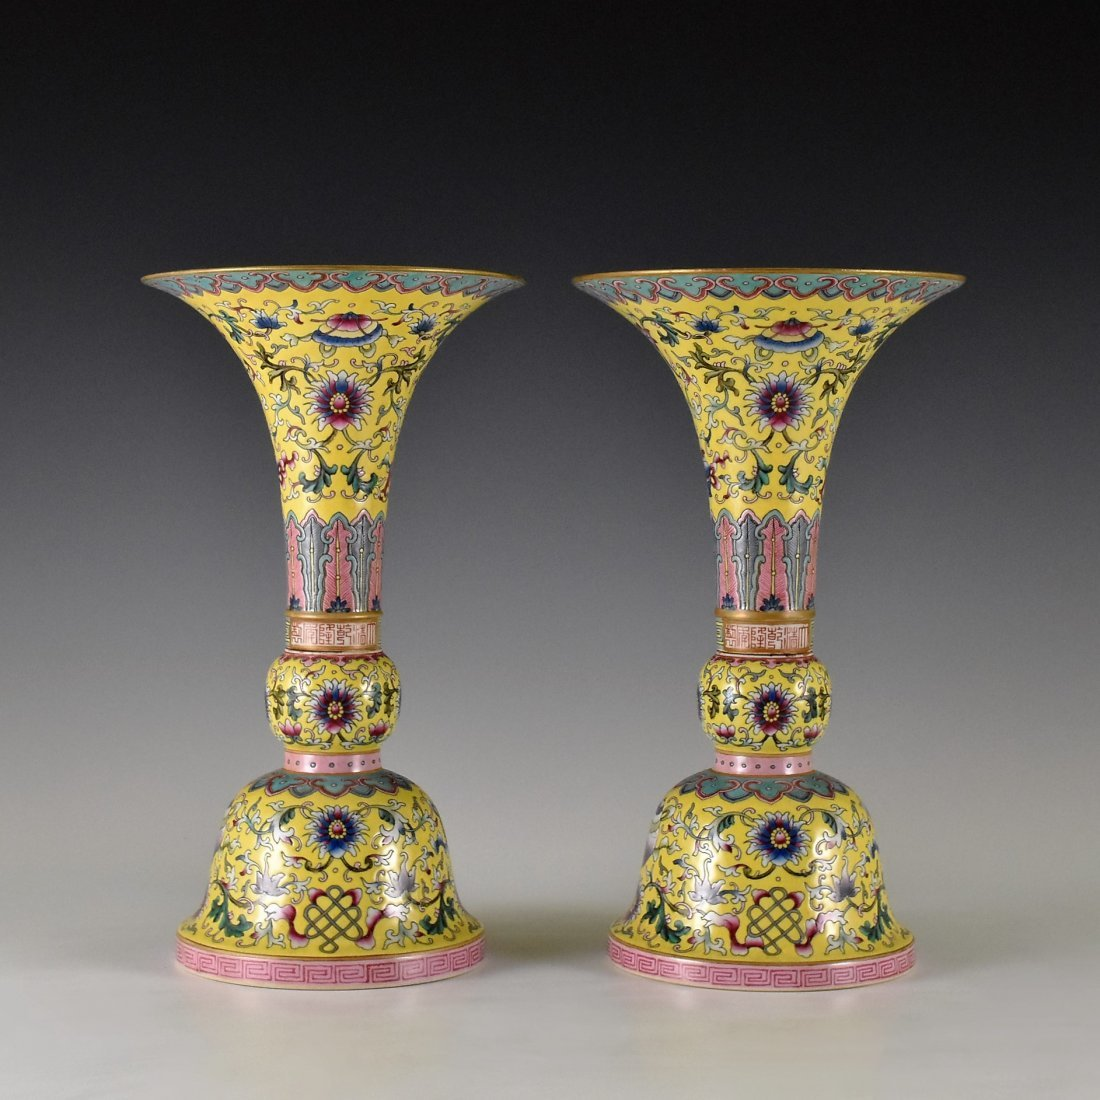 PAIR OF FAMILLE ROSE GU VASES ON YELLOW GROUND